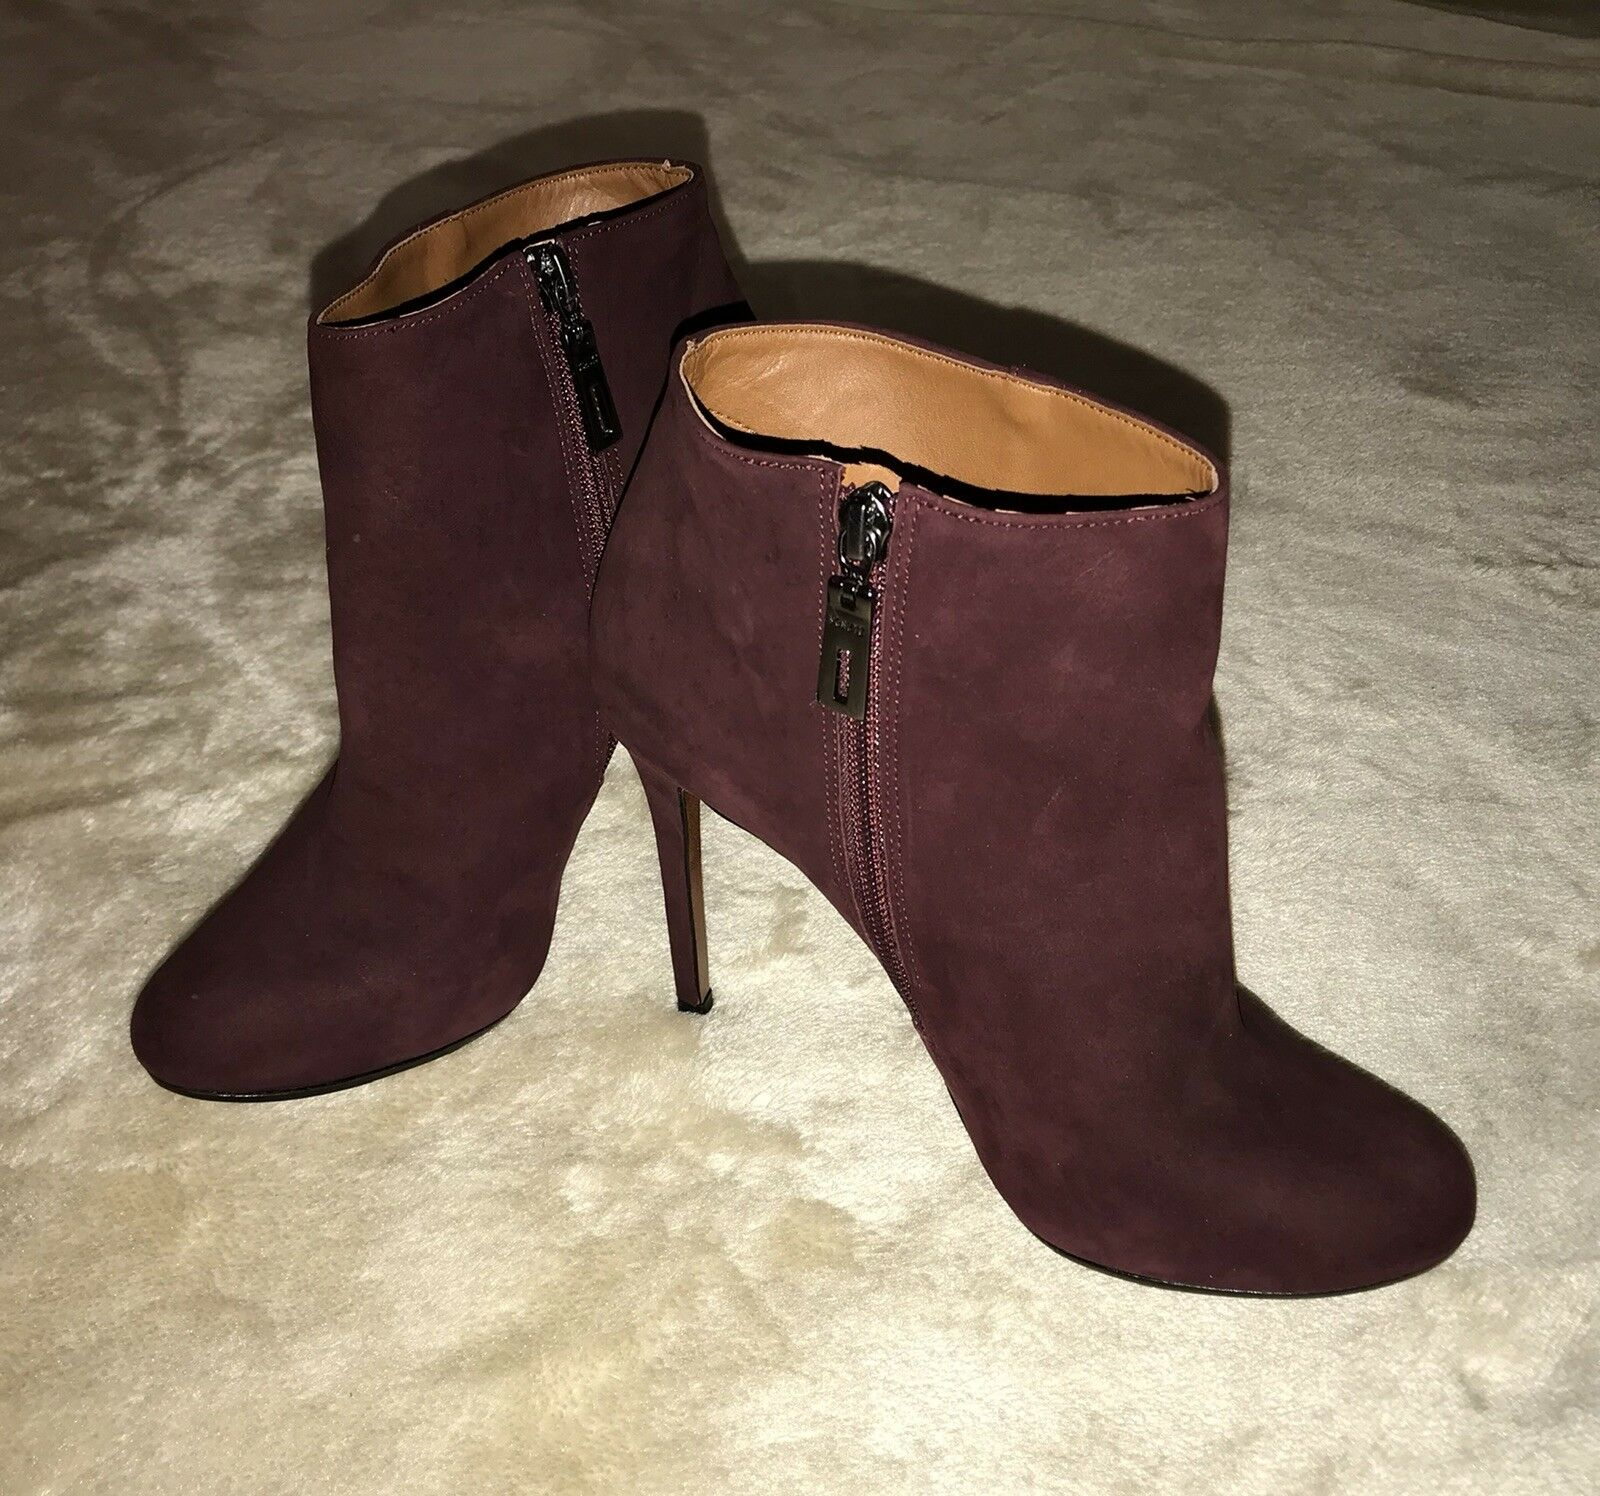 Schutz Suede High Stiletto Ankle Boots Burgundy Size 39